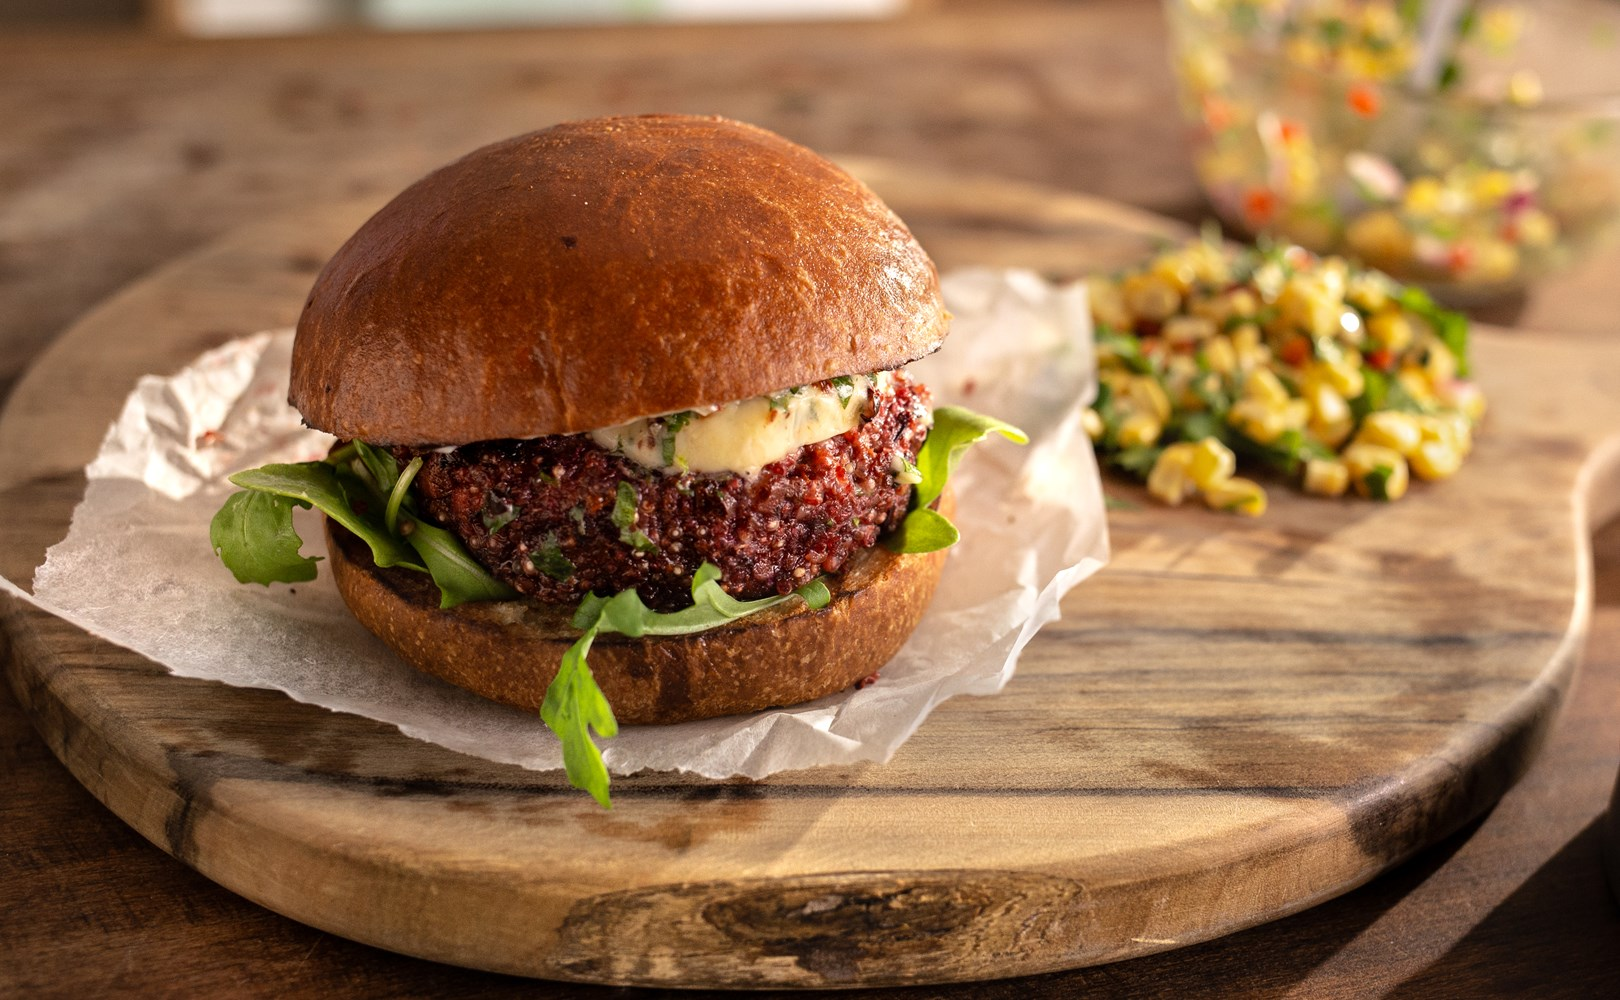 Lurpak Veggie Burger with beetroot